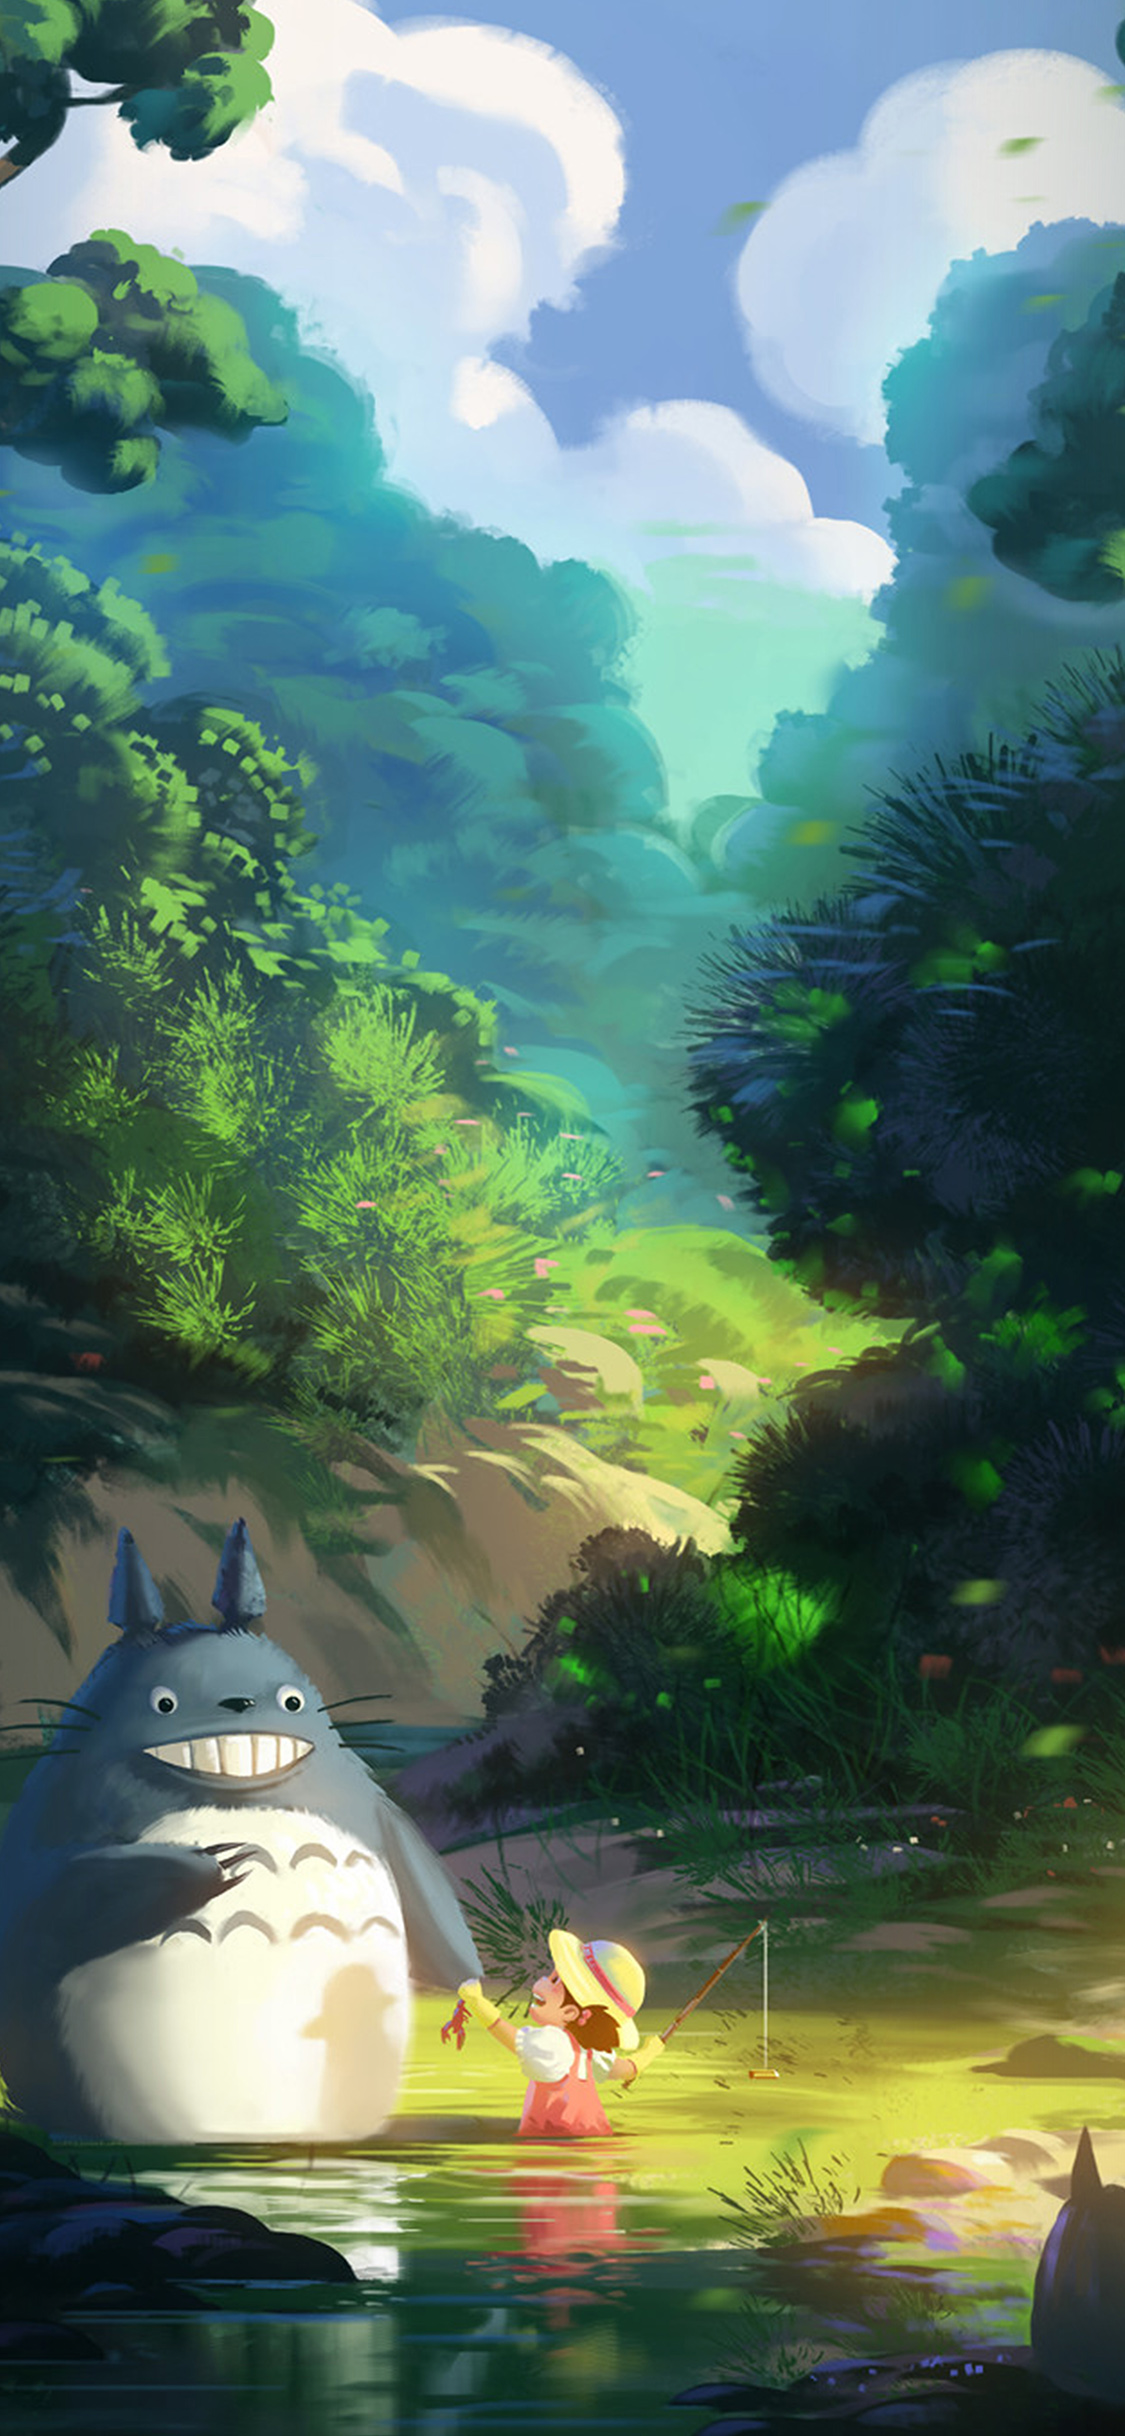 iPhoneXpapers.com-Apple-iPhone-wallpaper-av33-totoro-anime-liang-xing-illustration-art